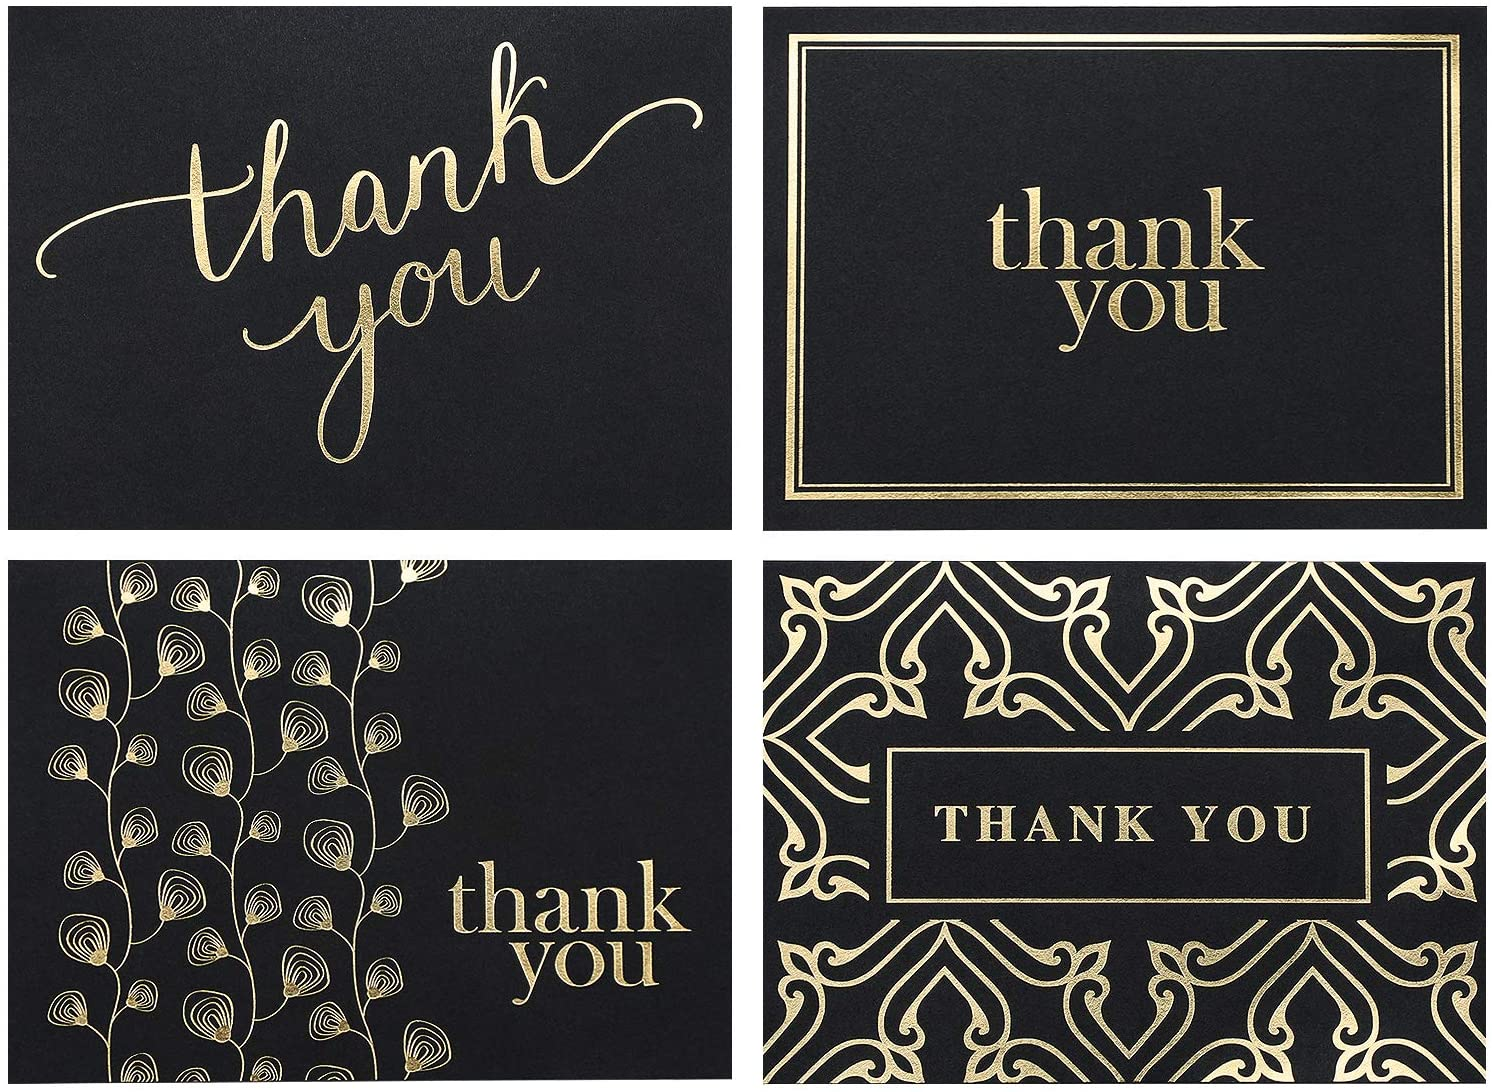 FREE SHIPPING Bold Thank you Card in Black and White